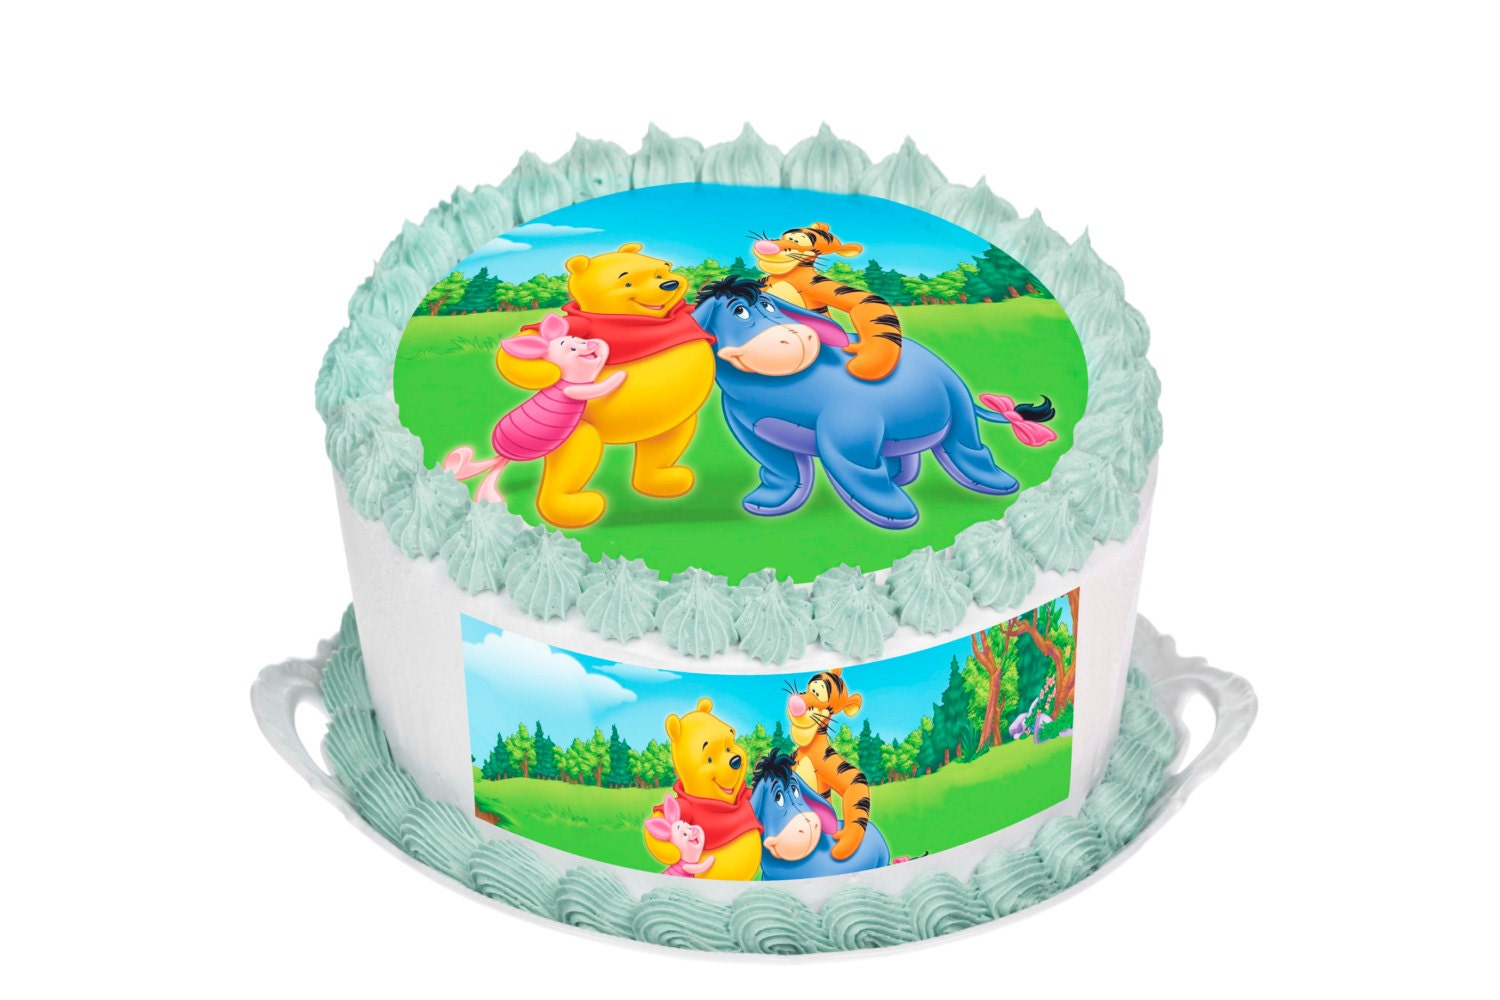 Winnie The Pooh Edible 7.5 Inch Round Cake Topper for 8 inch